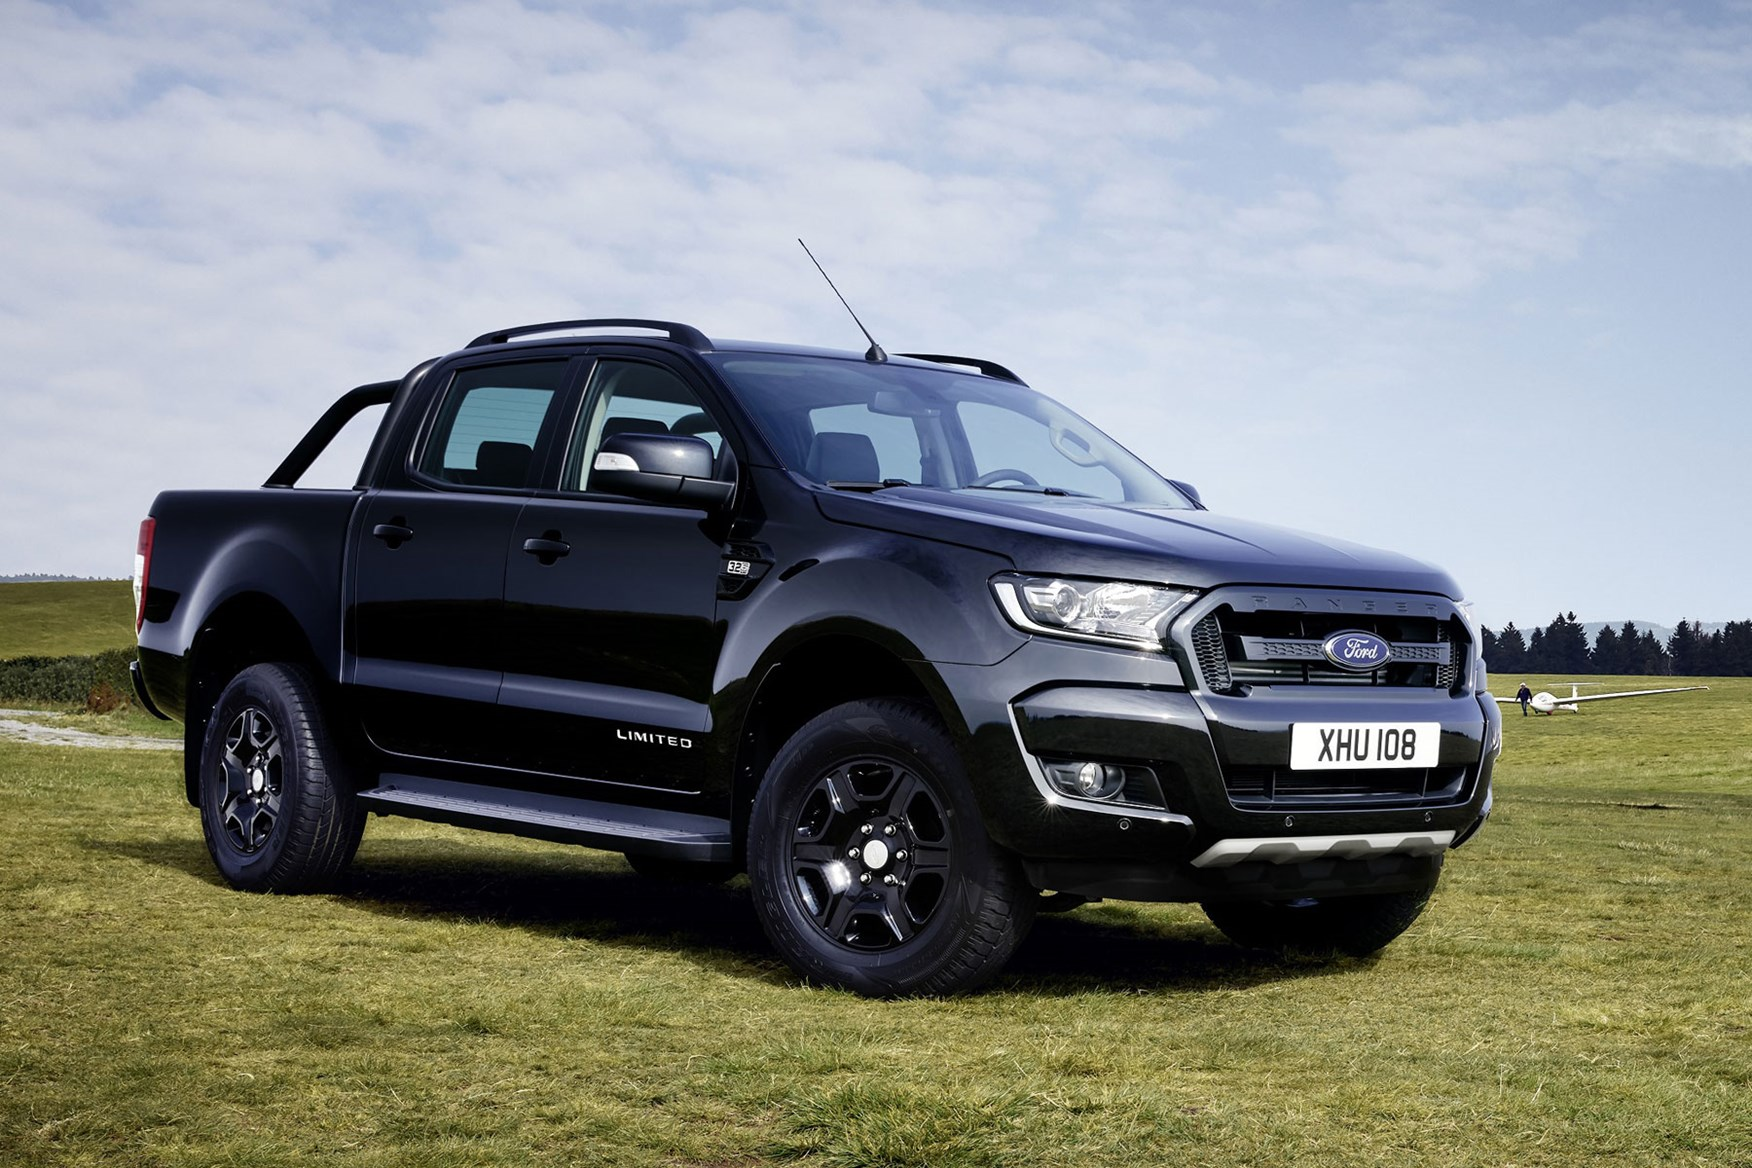 Ford Ranger Black Edition review - front view